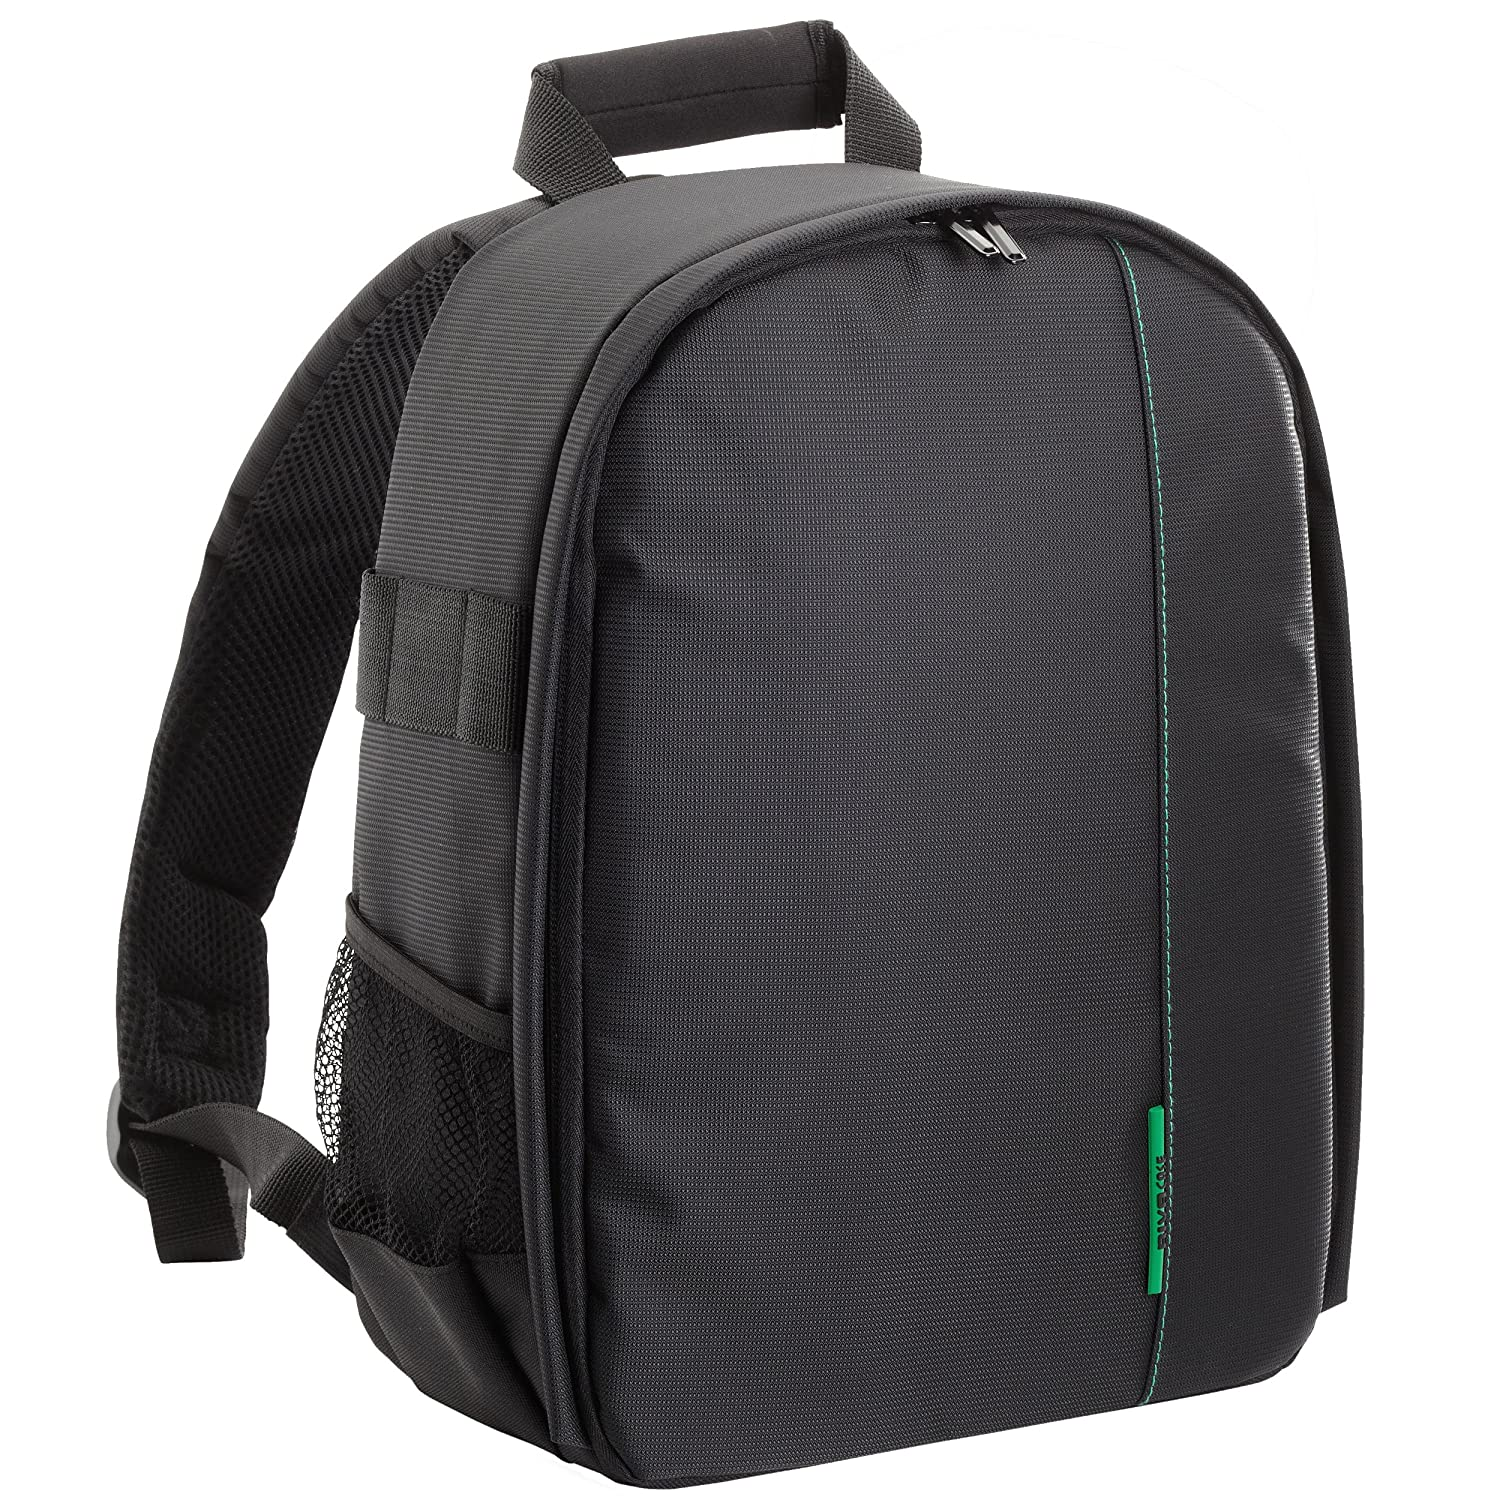 RivaCase 7460 Stylish Backpack